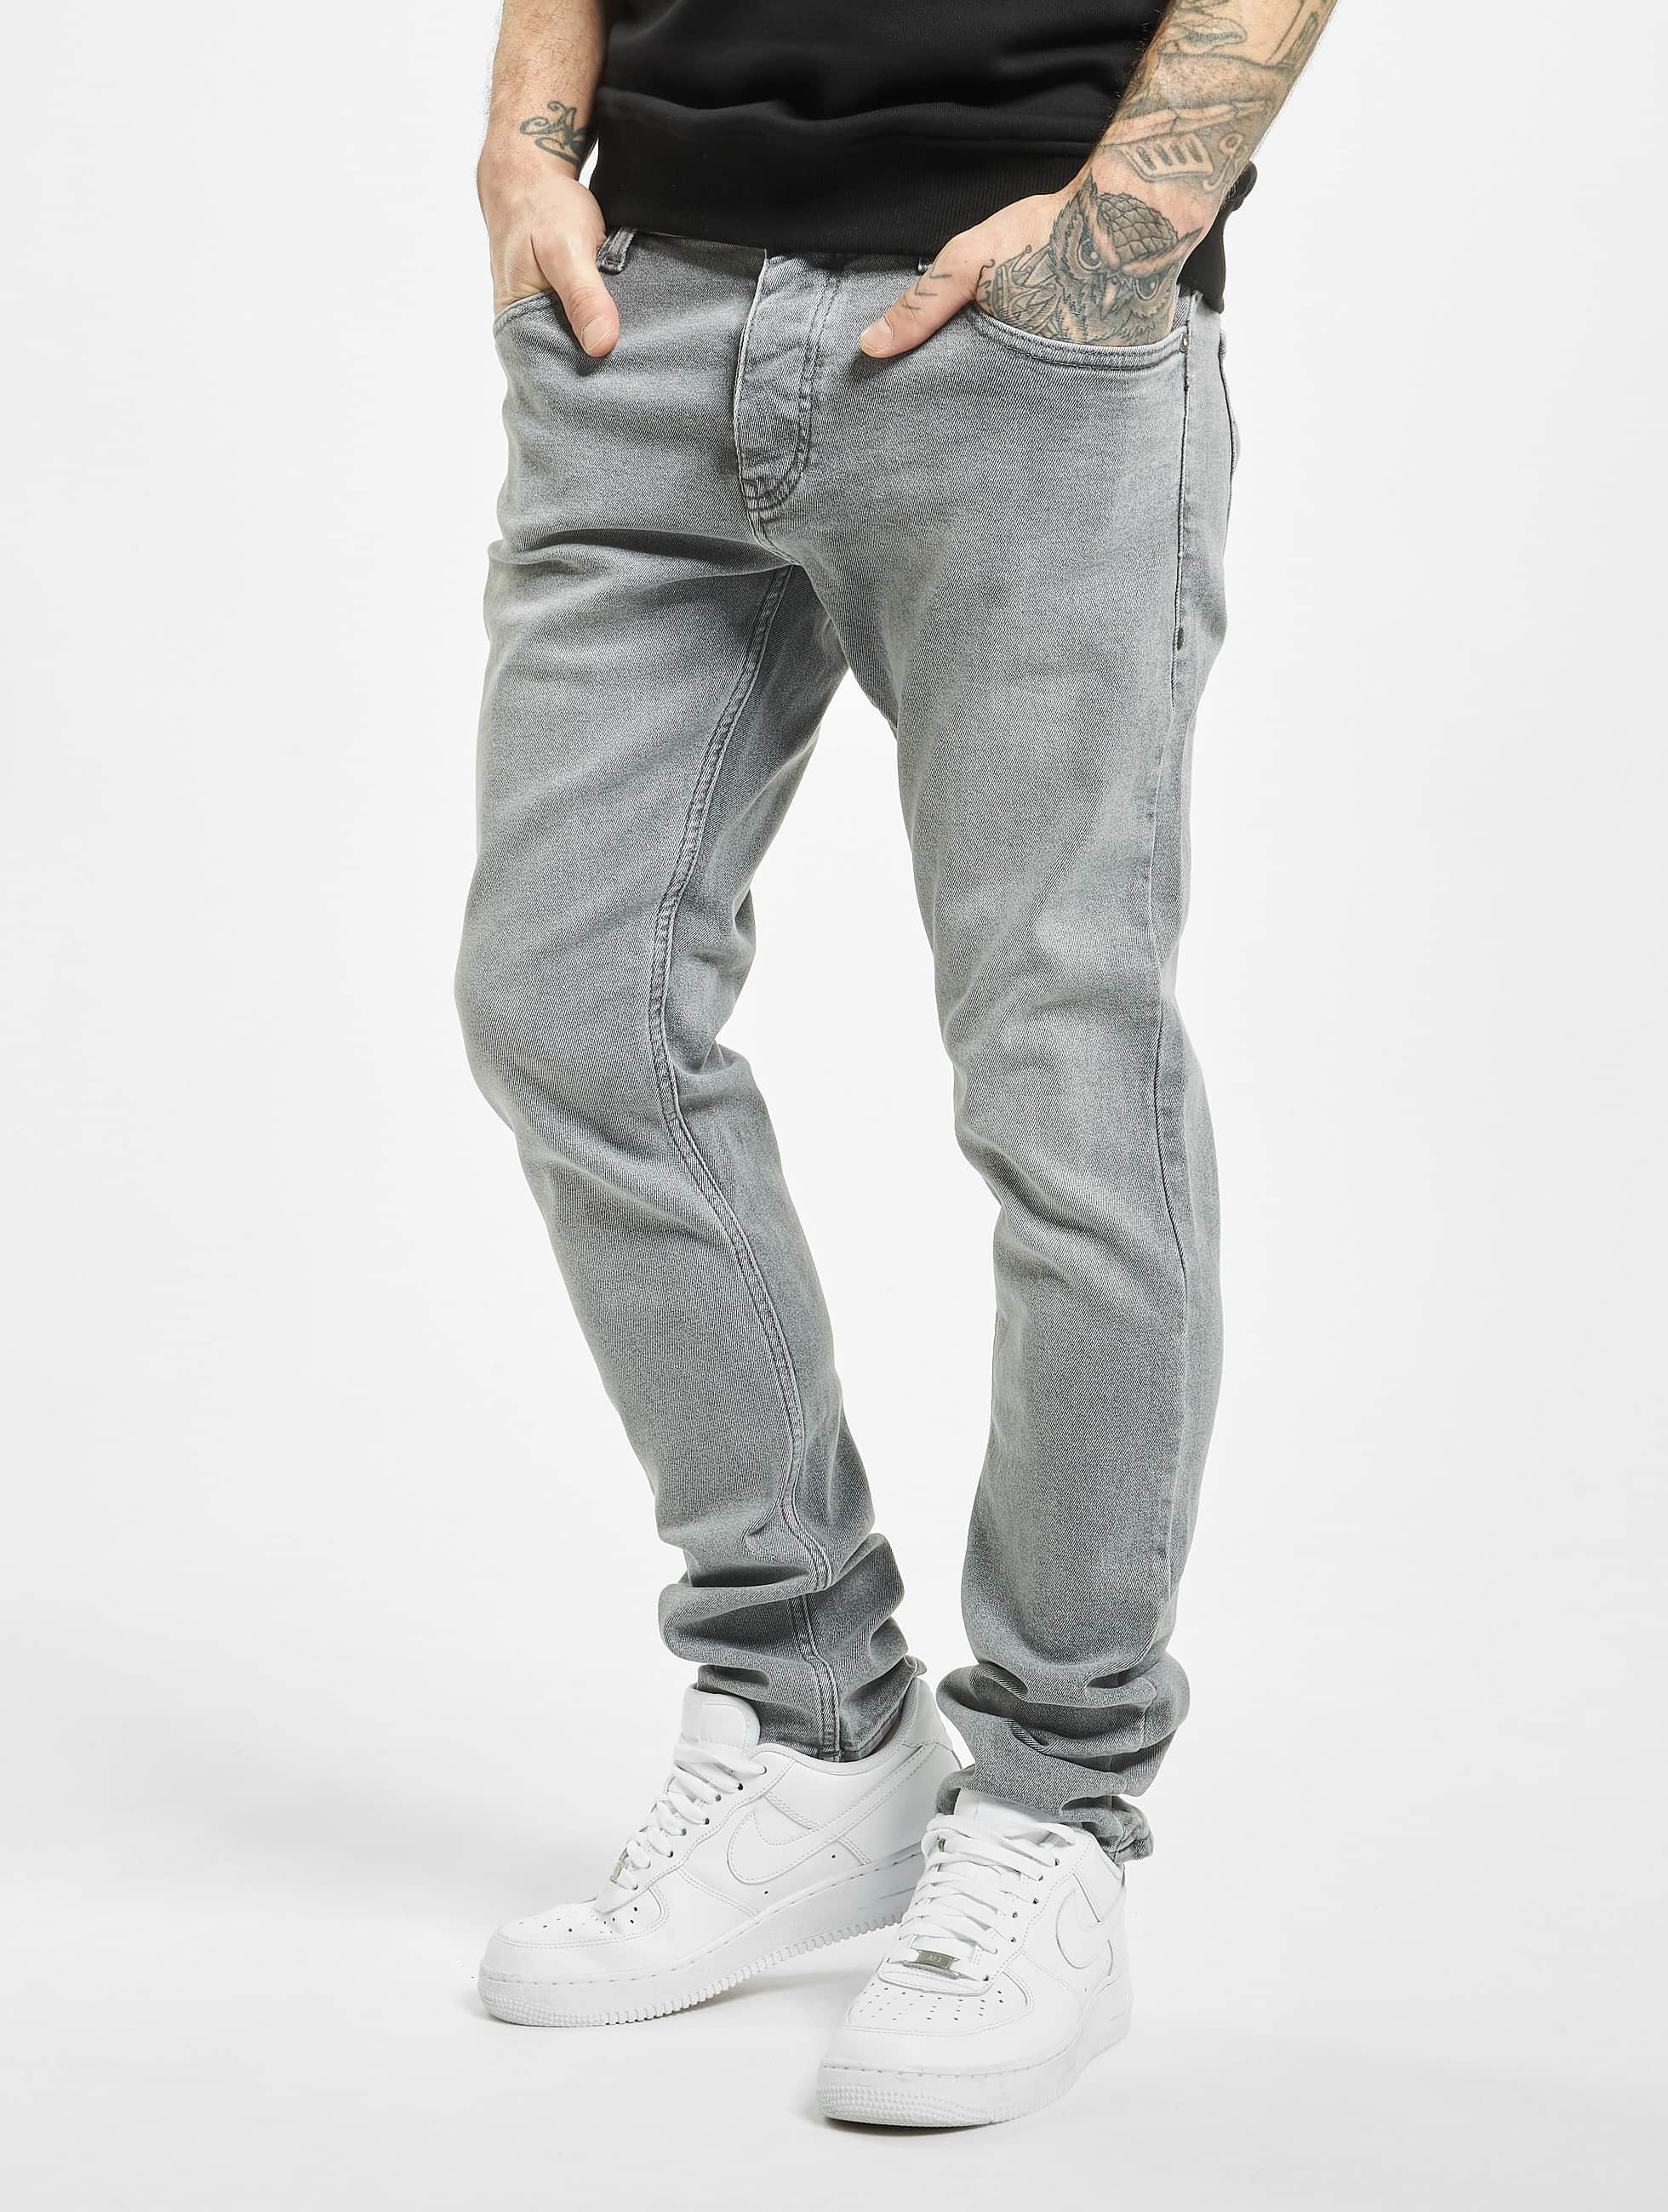 2Y / Slim Fit Jeans Cem in grey W 31